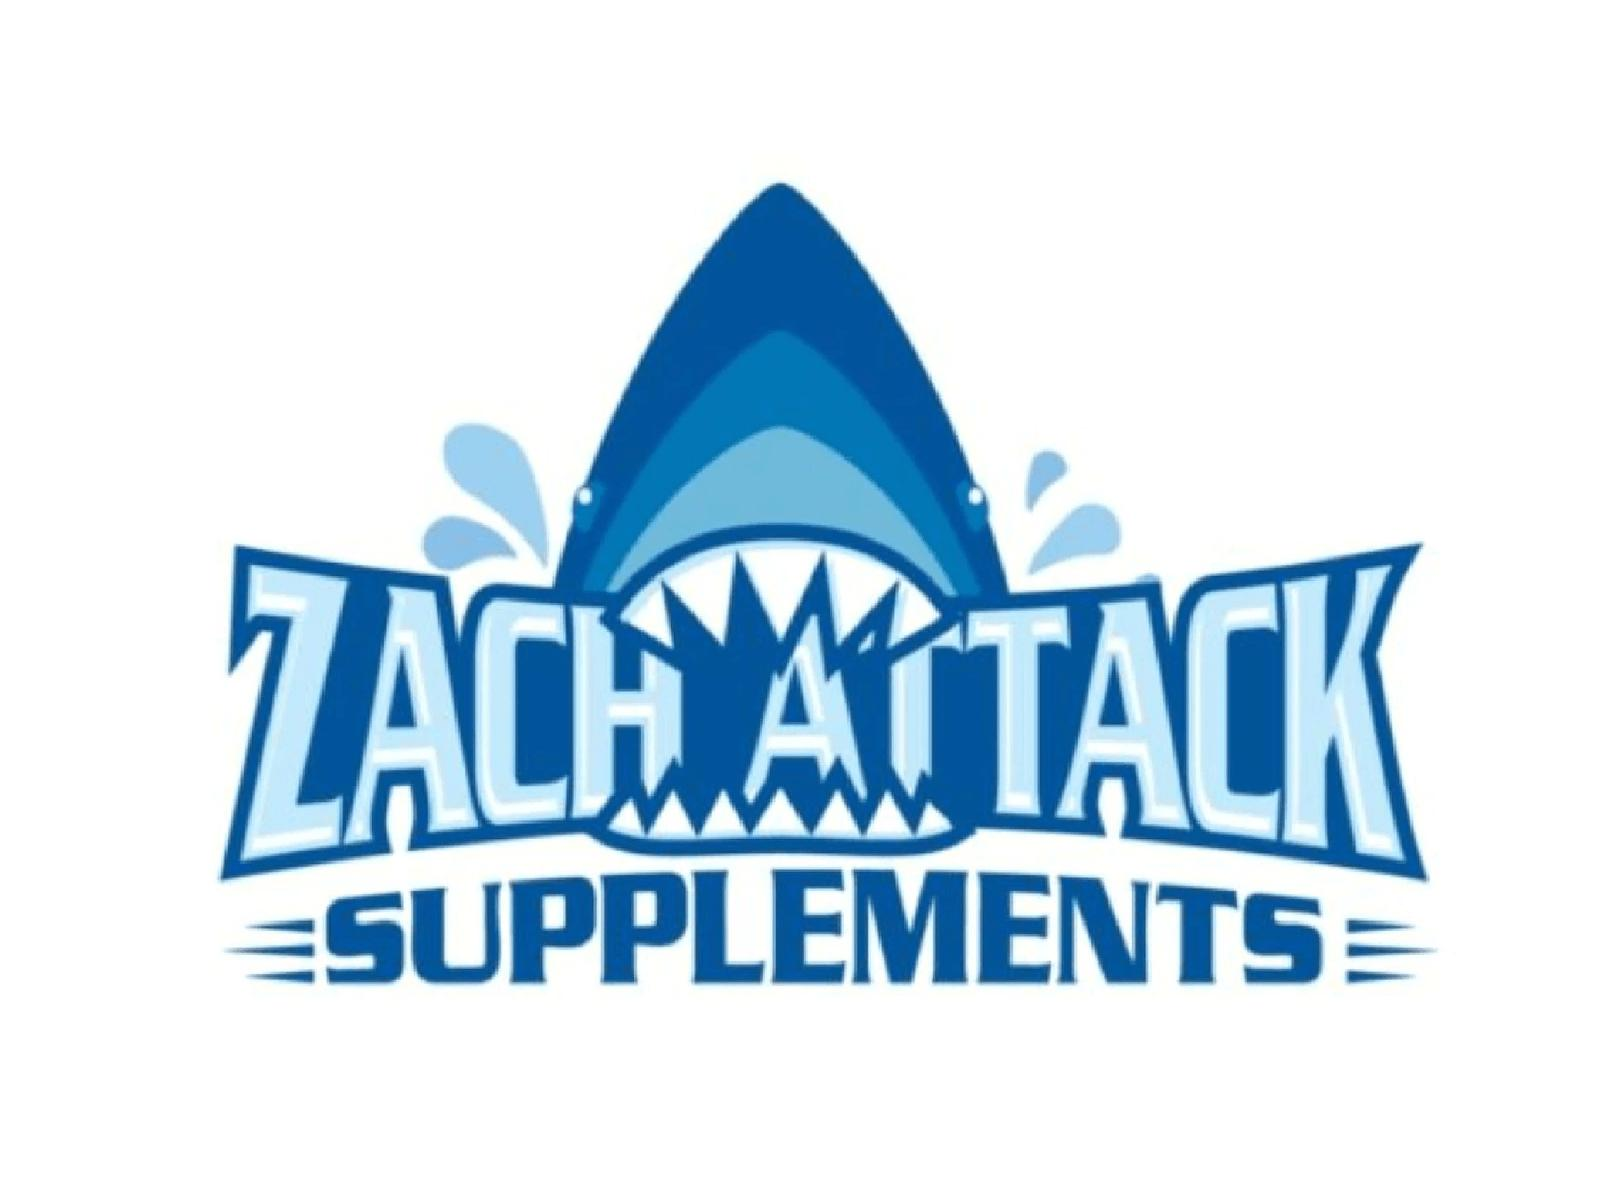 Zach Attack Supplements